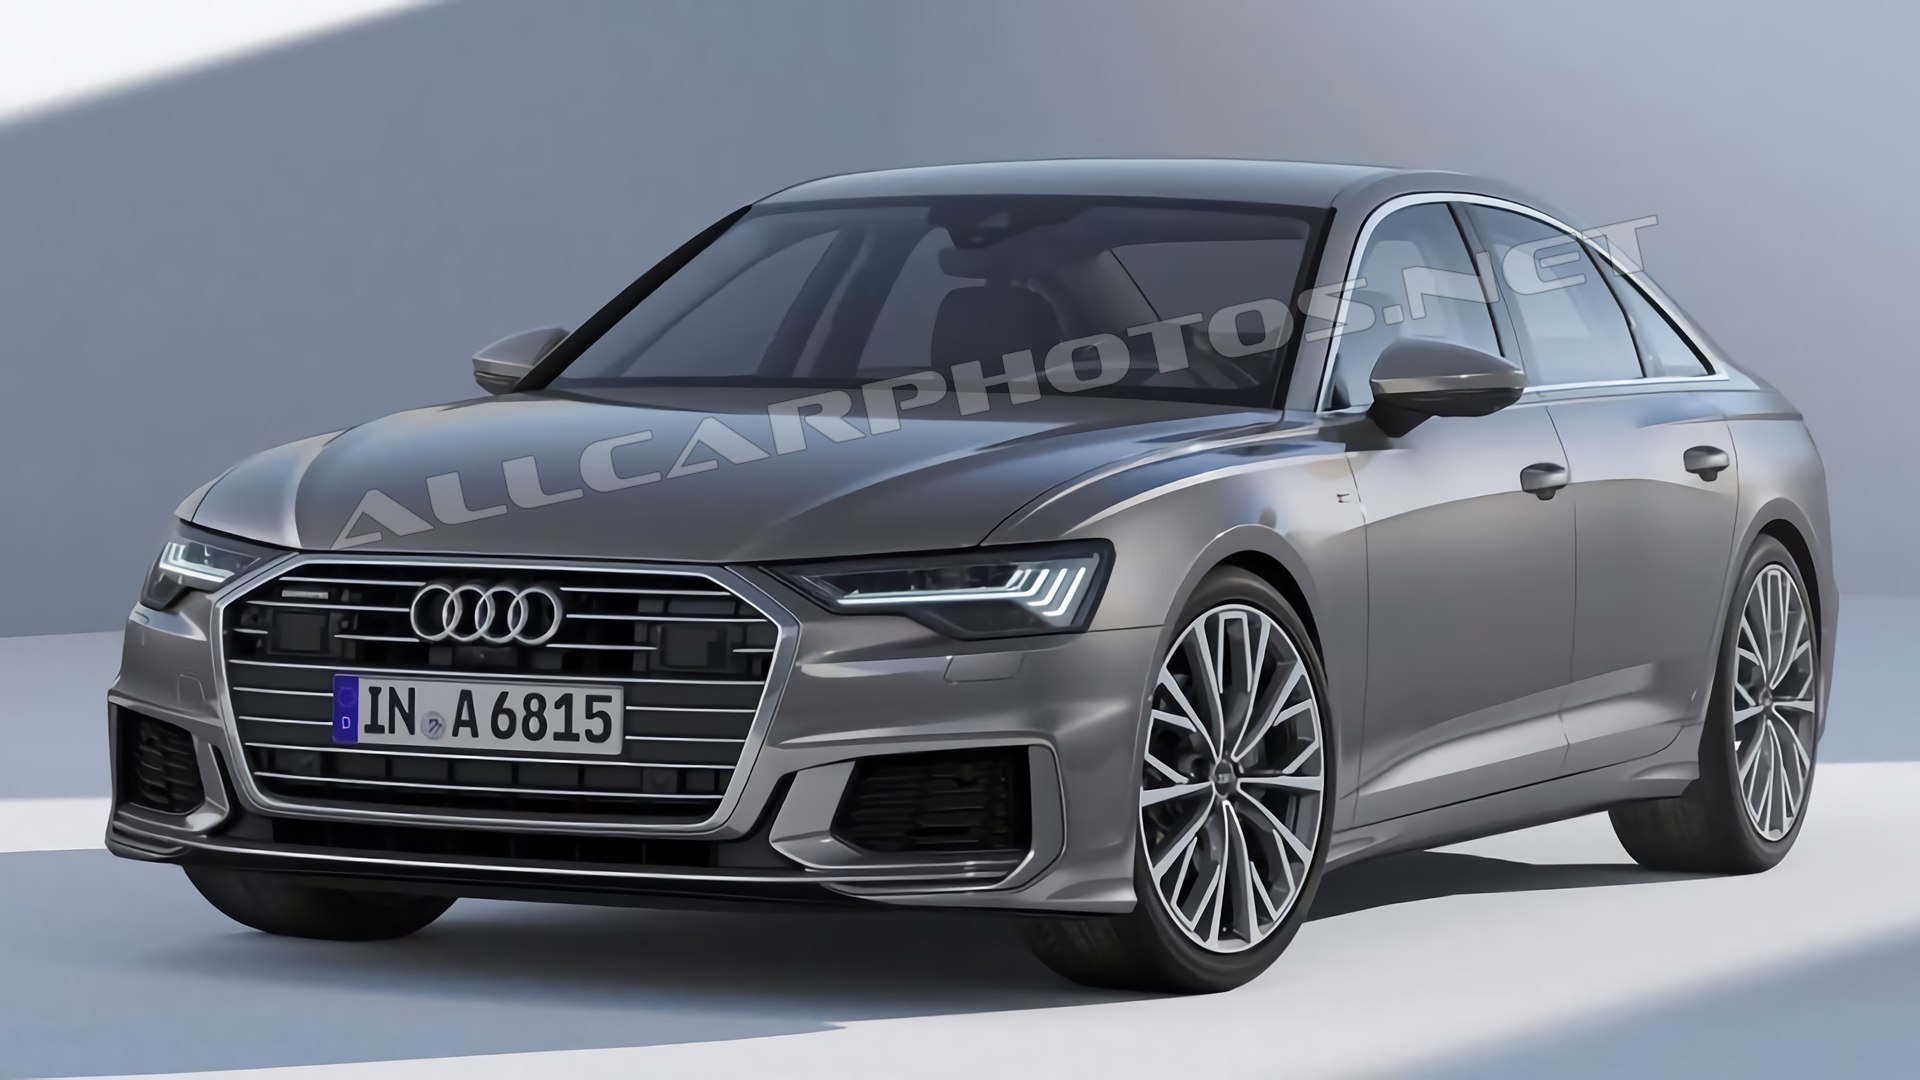 2021 Audi A6 Fresh Look New Details Car Photos